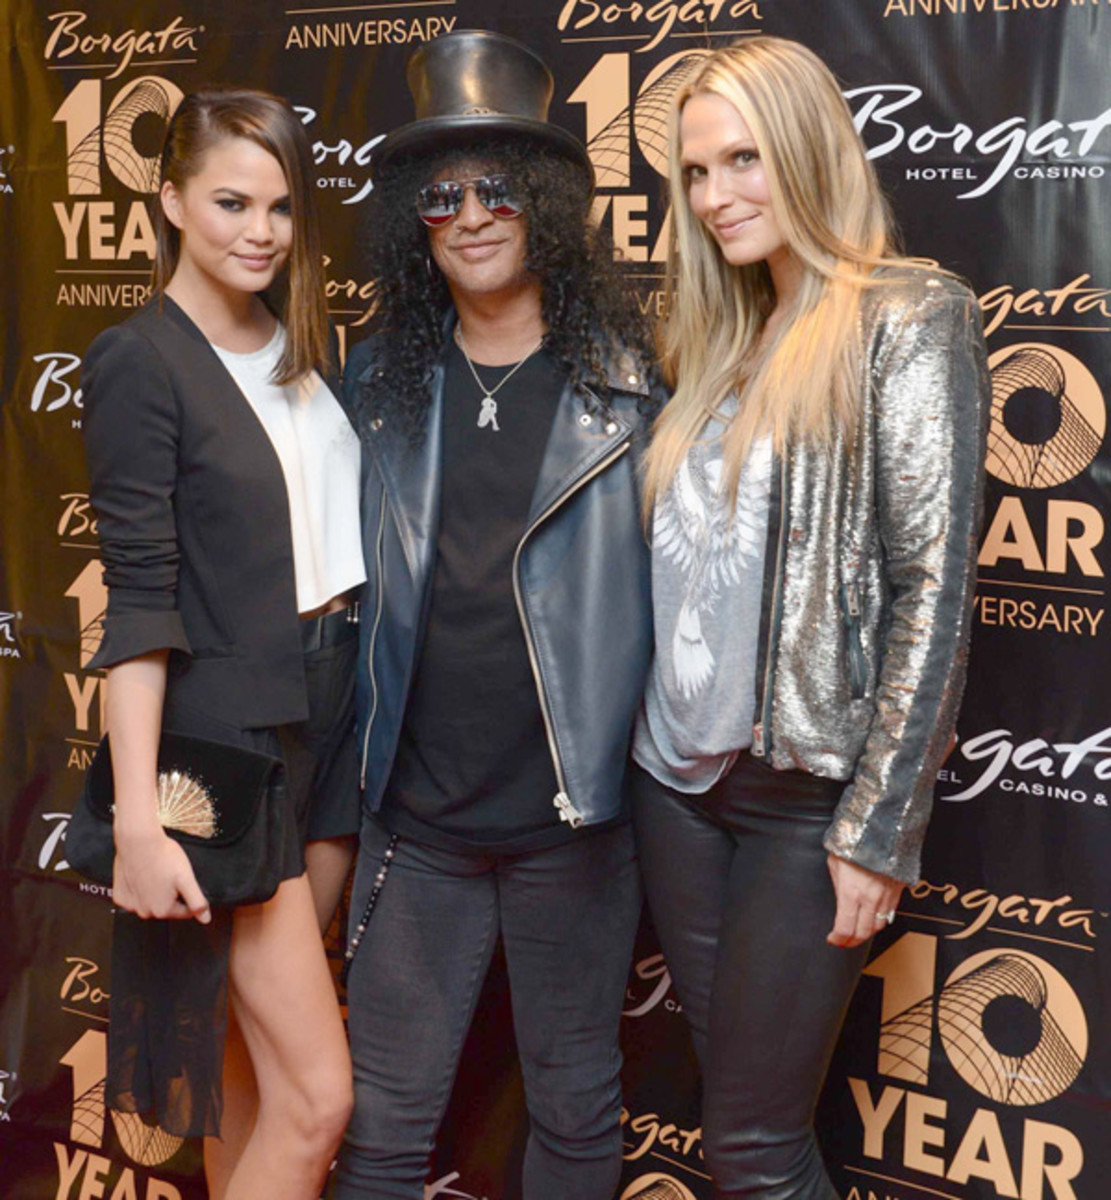 Chrissy Teigen, Molly Sims and Slash :: Courtesy of Borgata Hotel Casino